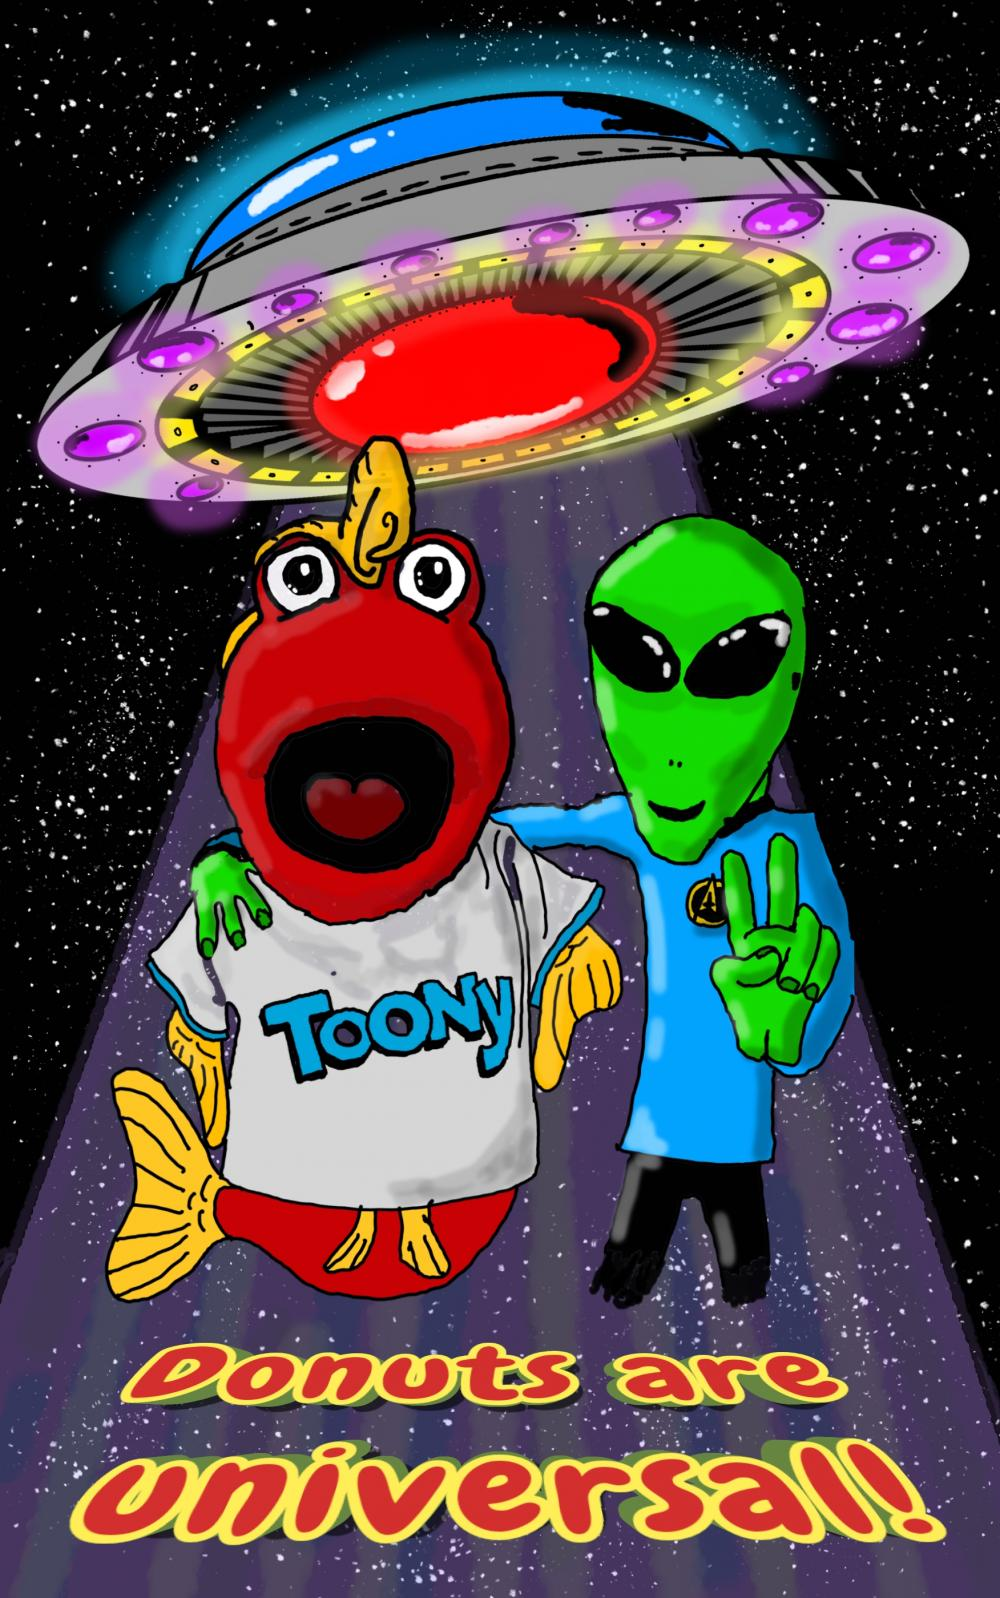 I love Toony! I wake up at 5:55am every day so I can get my cartoons.  I really  liked the space themed episode of Toony on the day Blue Origin launched its first spaceship. What a moment in history we got to see!